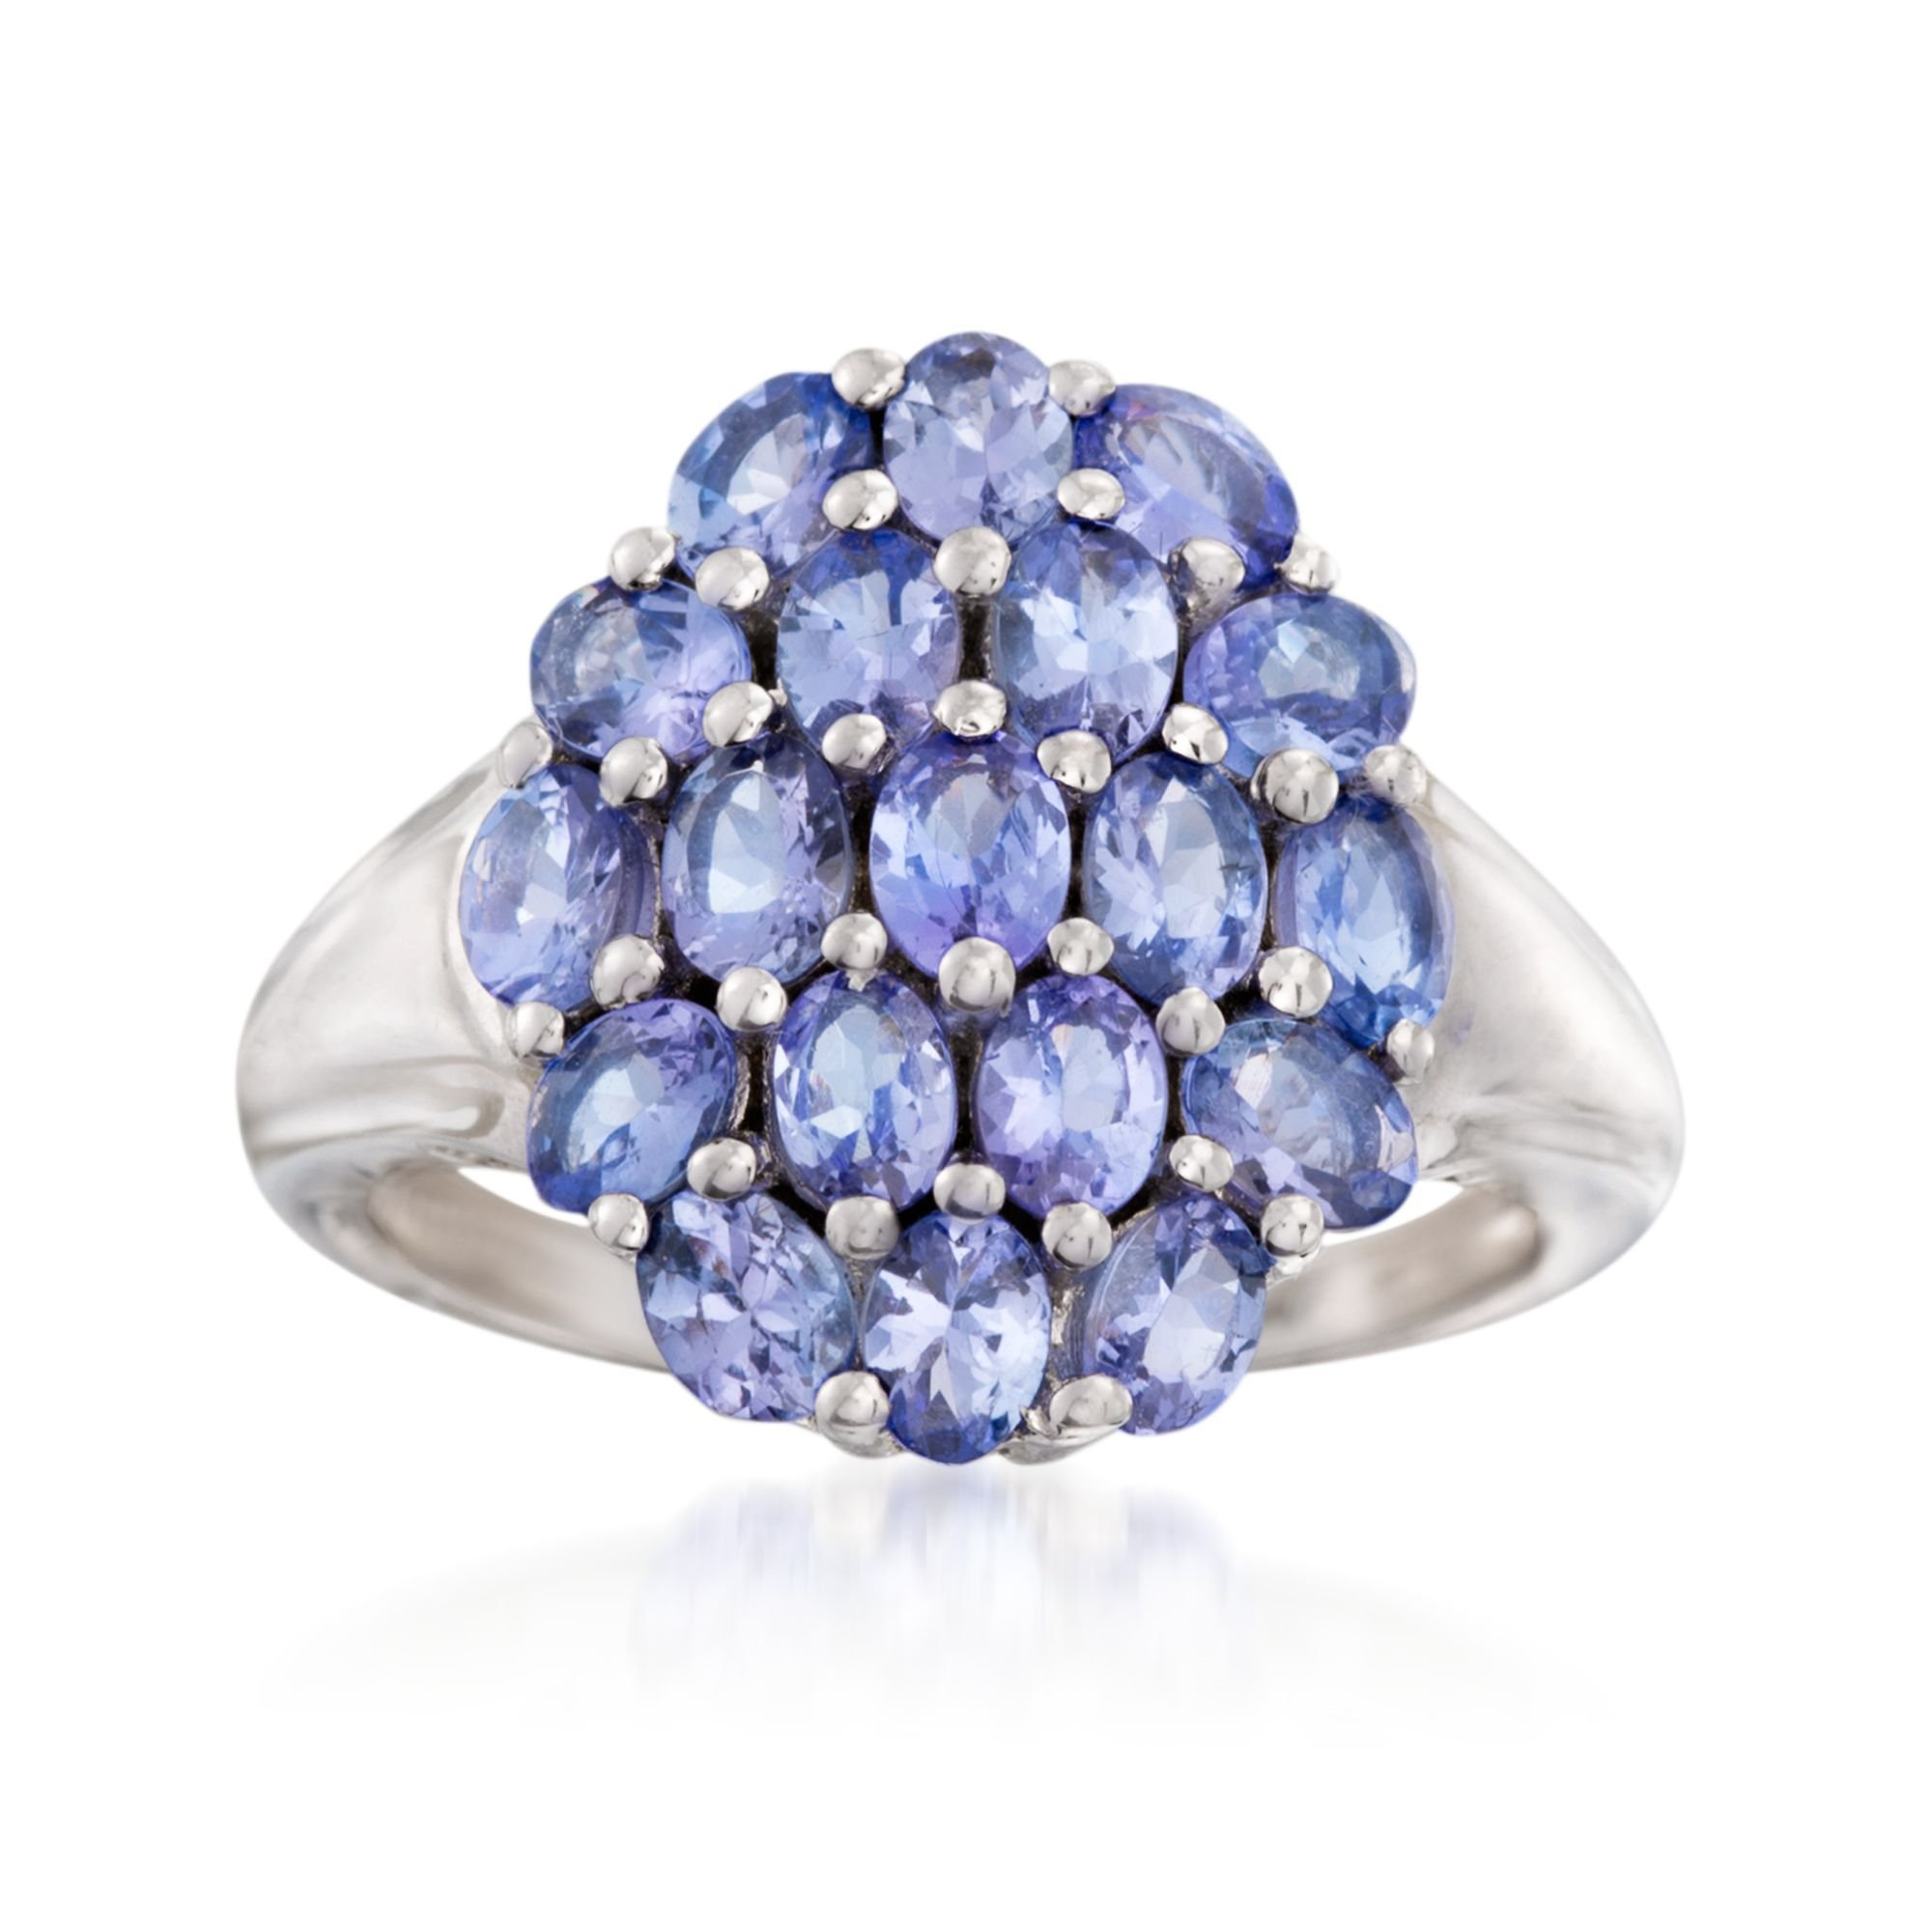 Ross-Simons 3.20 ct. t.w. Tanzanite Cluster Ring in Sterling Silver